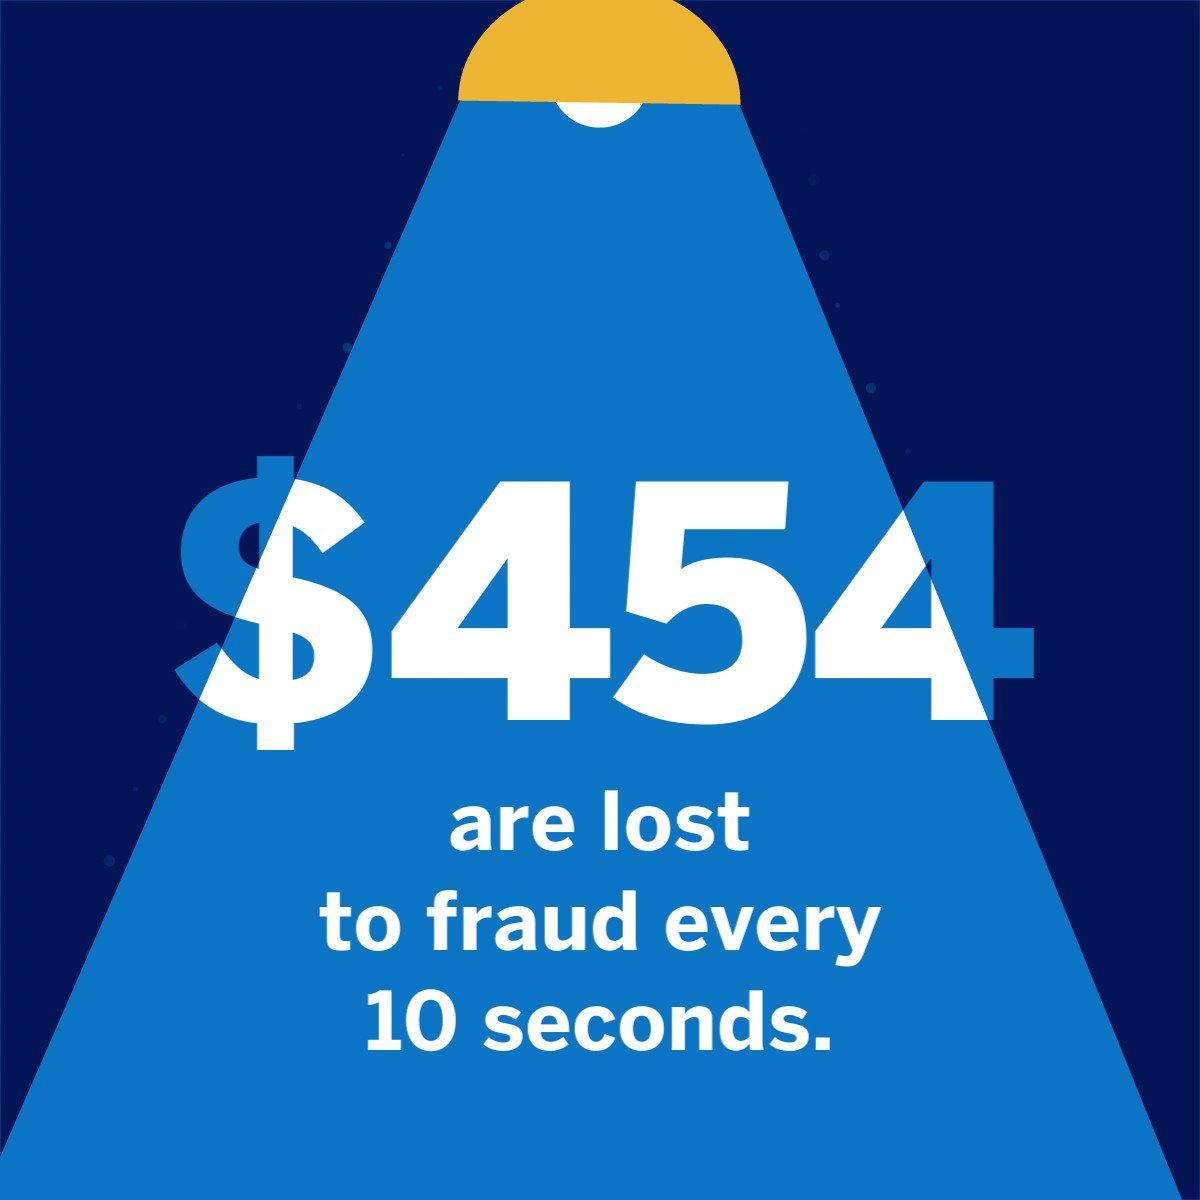 Are you ready to stop fraud in its tracks this holiday season? Follow these tips that could help you stop fraud before it happens and sign up for Amex's Fraud Alerts. #BeCyberSmart